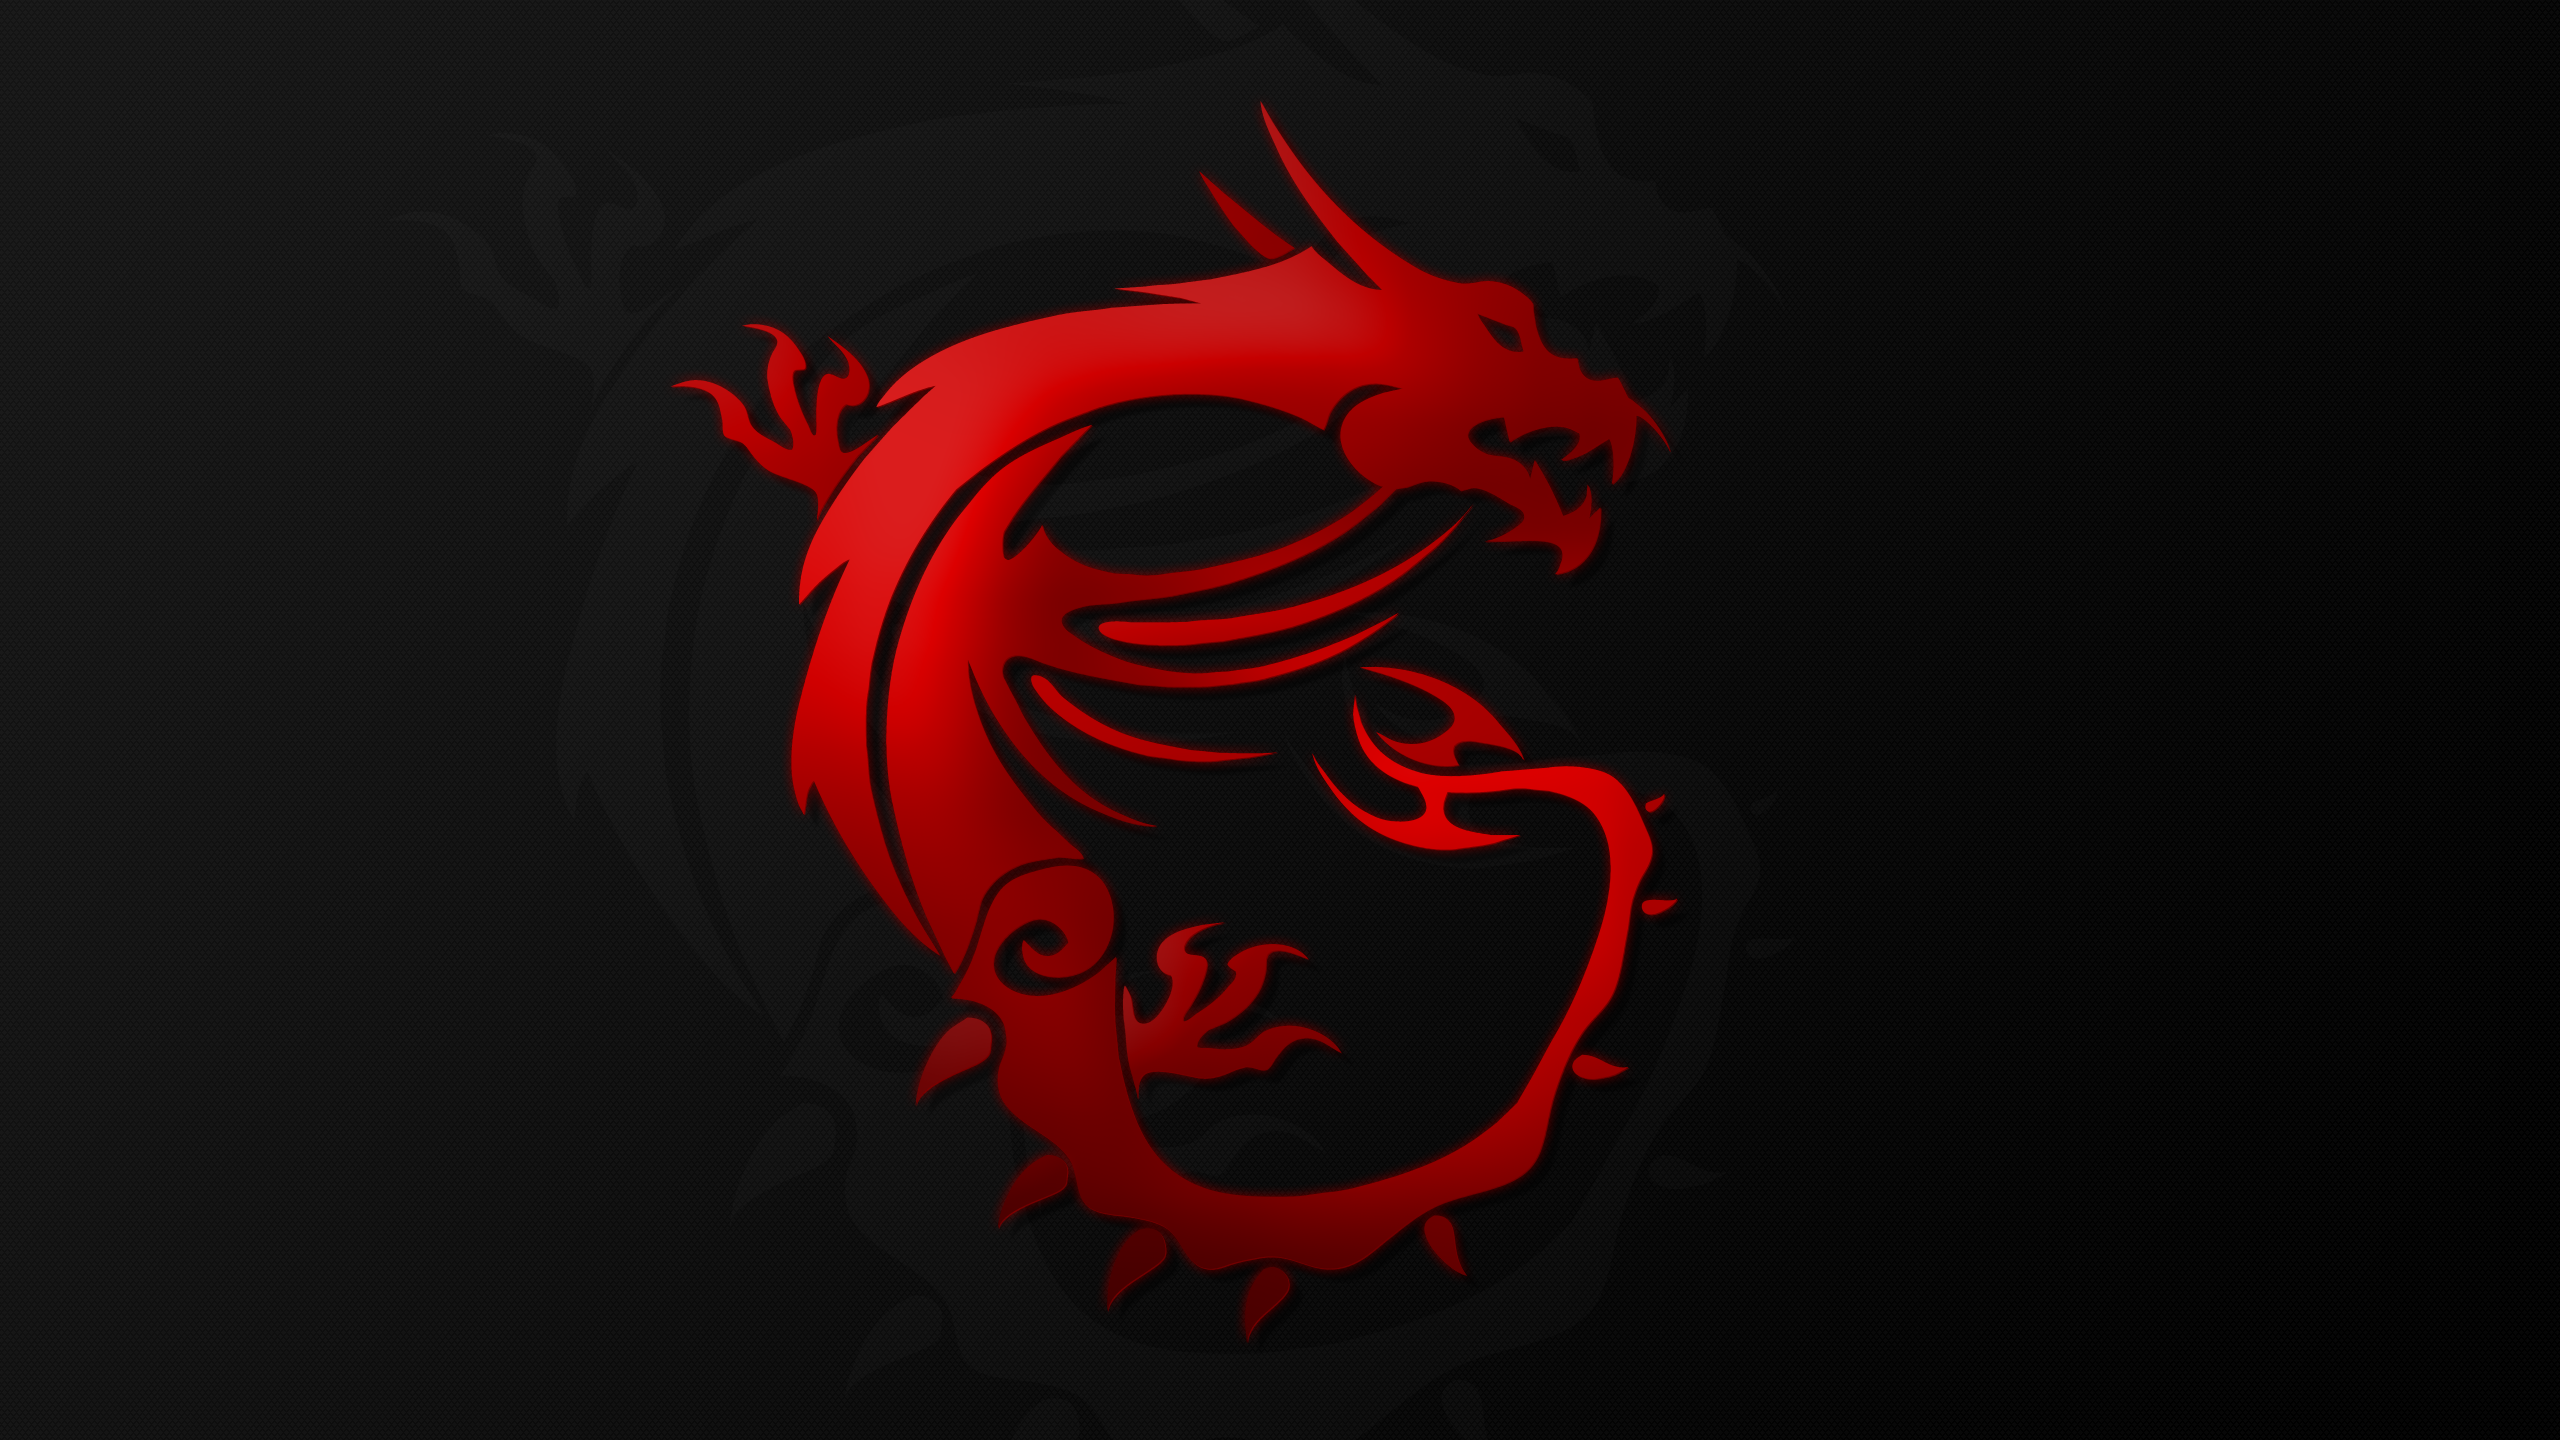 Red Dragon 2560x1440 Wallpapers Top Free Red Dragon 2560x1440 Backgrounds Wallpaperaccess